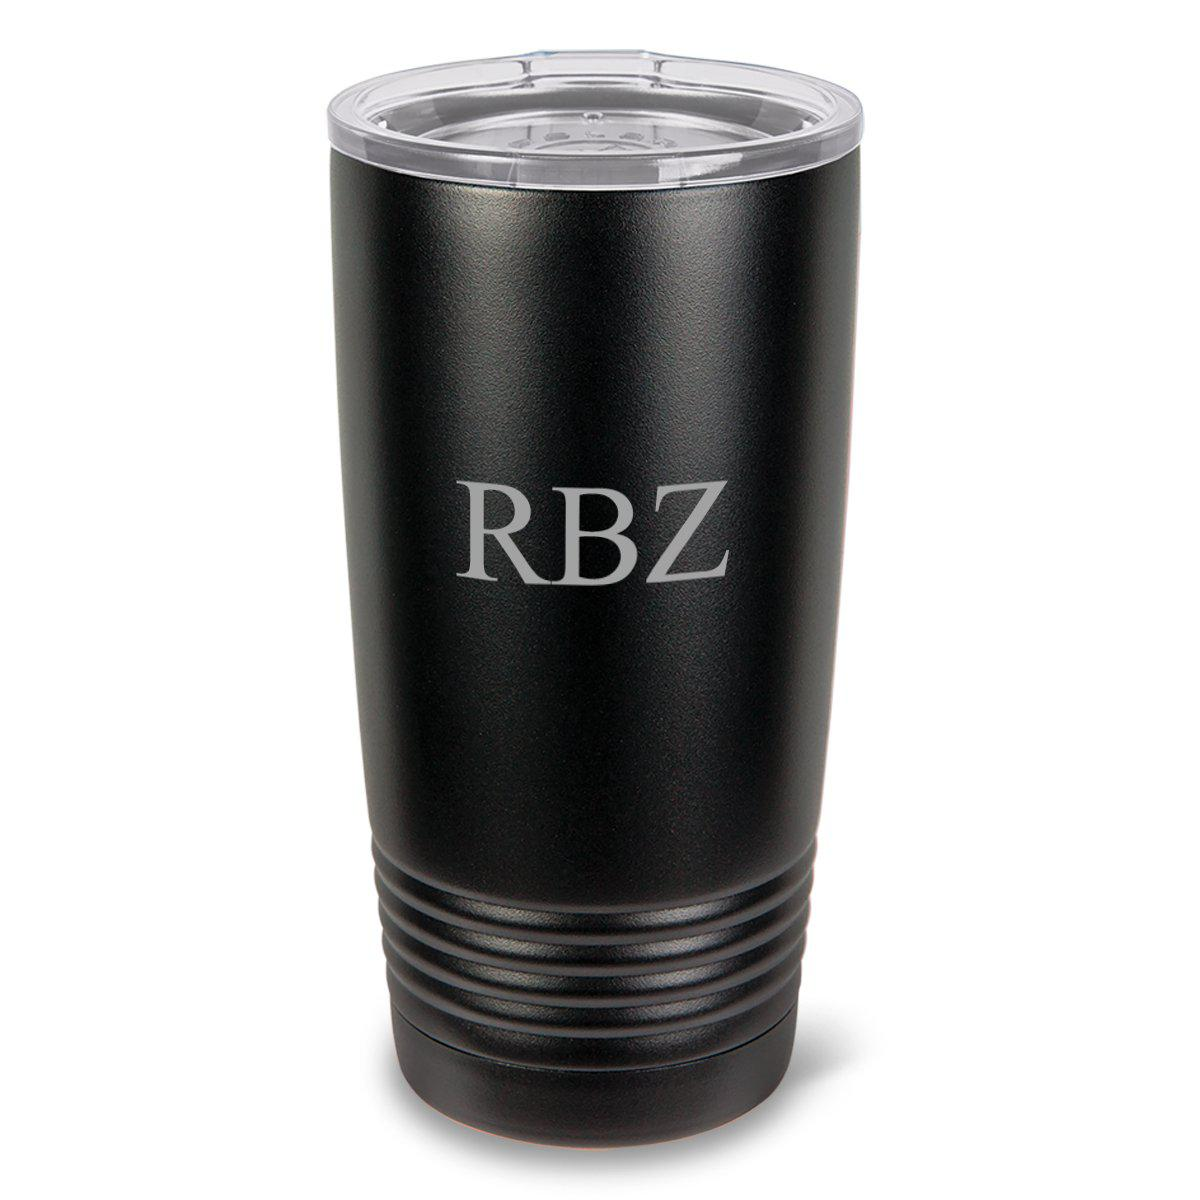 Monogrammed 20oz. Black Matte Double Wall Insulated Tumbler - All